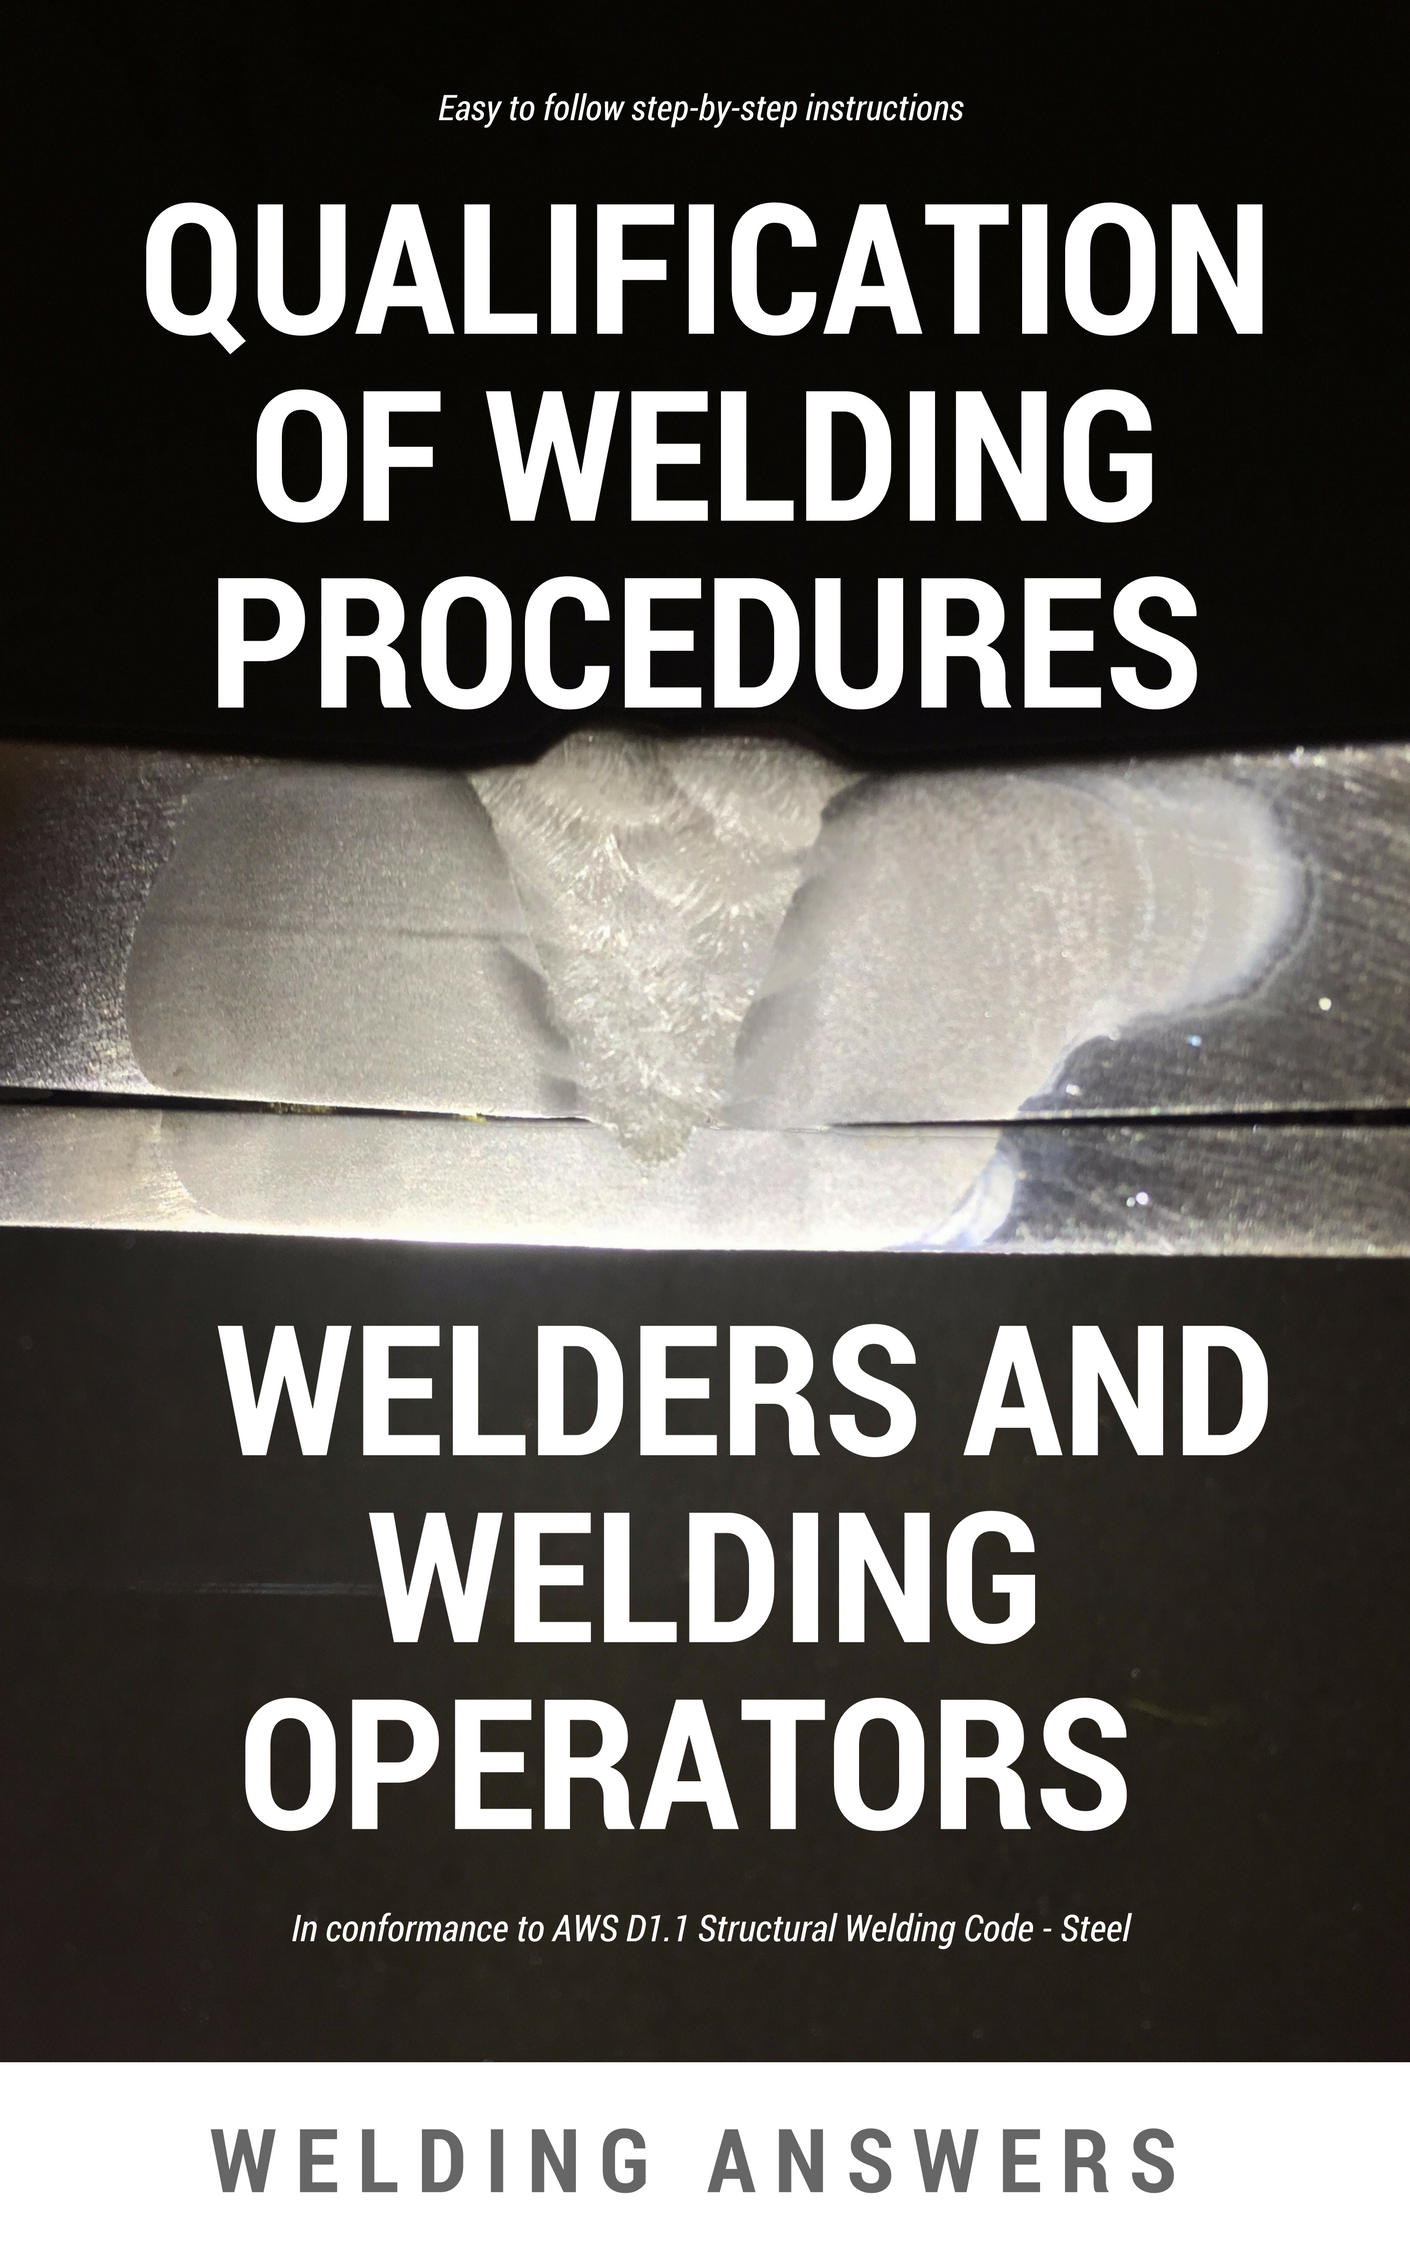 7 Causes of Spatter and How to Eliminate It | WELDING ANSWERS